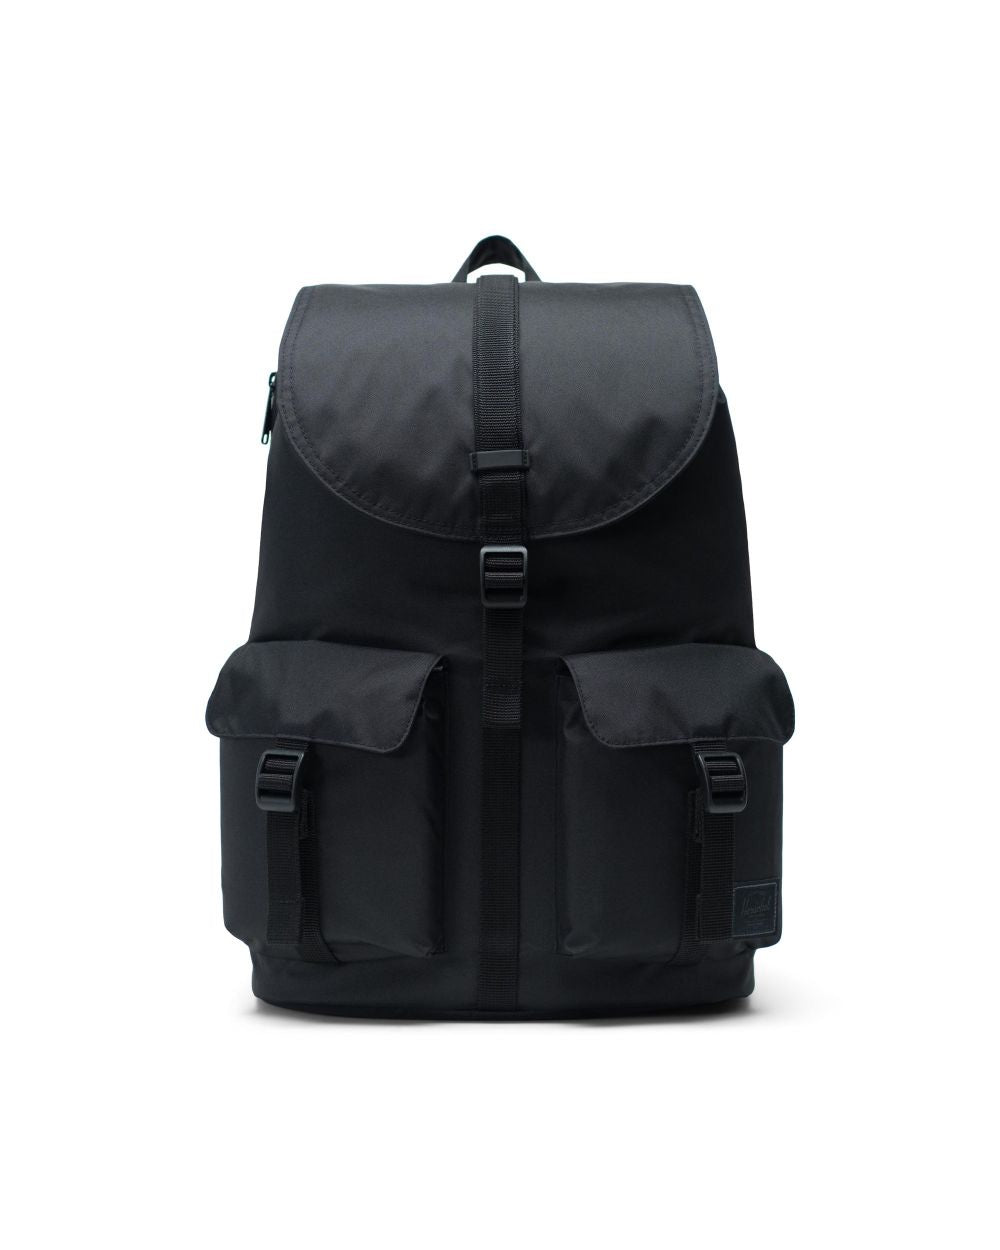 HERSCHEL - DAWSON BACKPACK IN BLACK